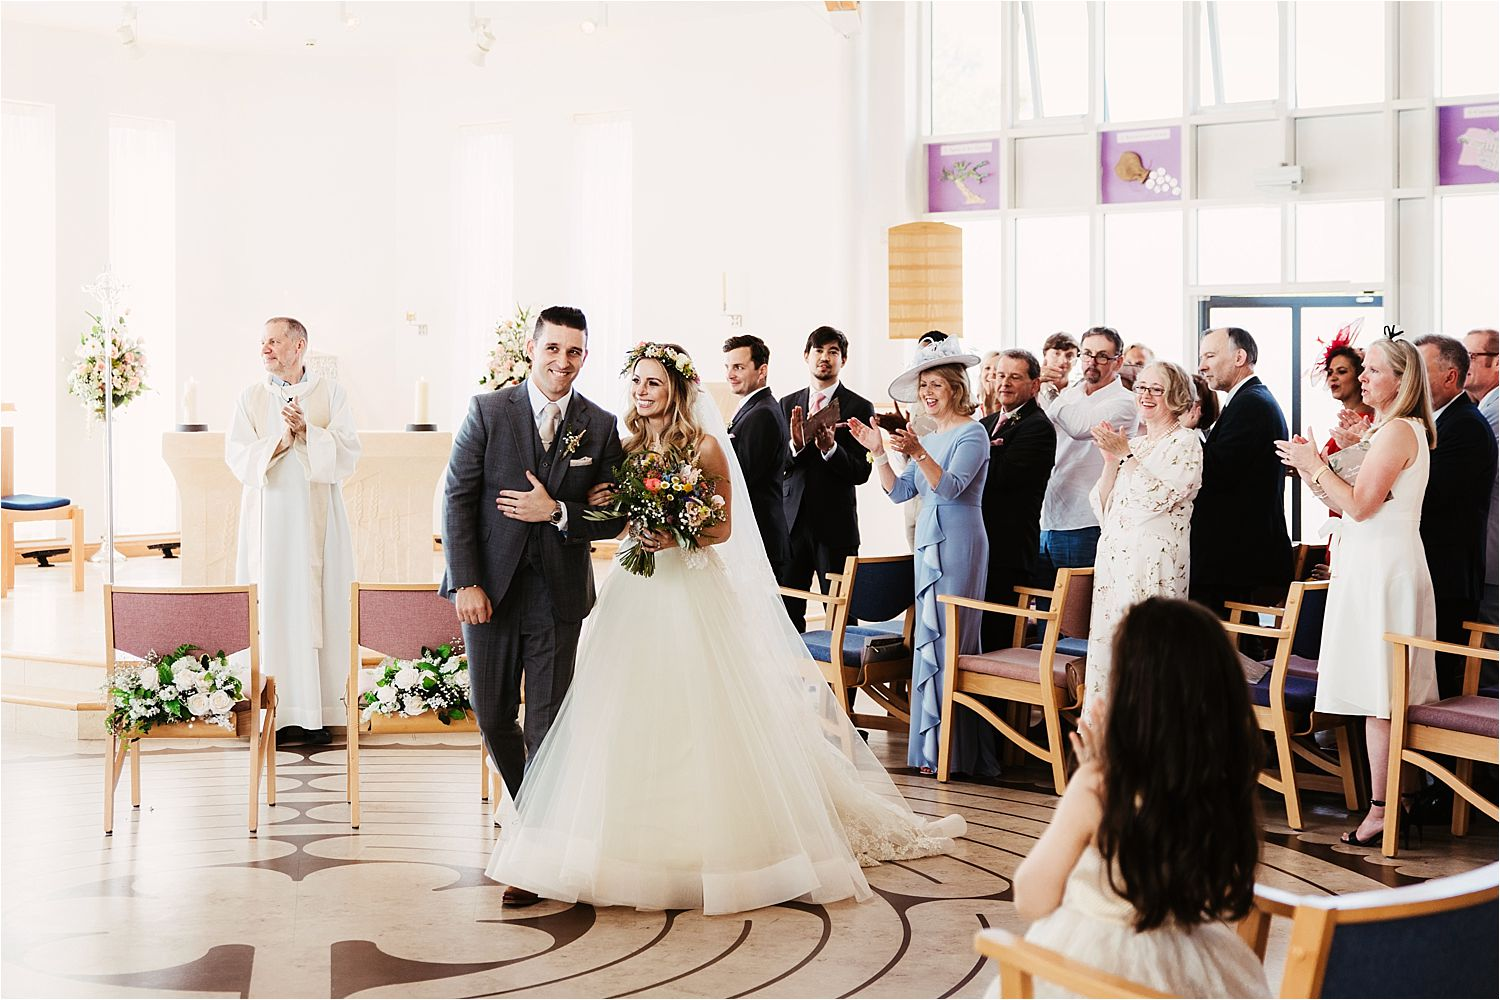 Bride and Groom aftyer their wedding ceremony in Cheshire, Dress by Lazarro